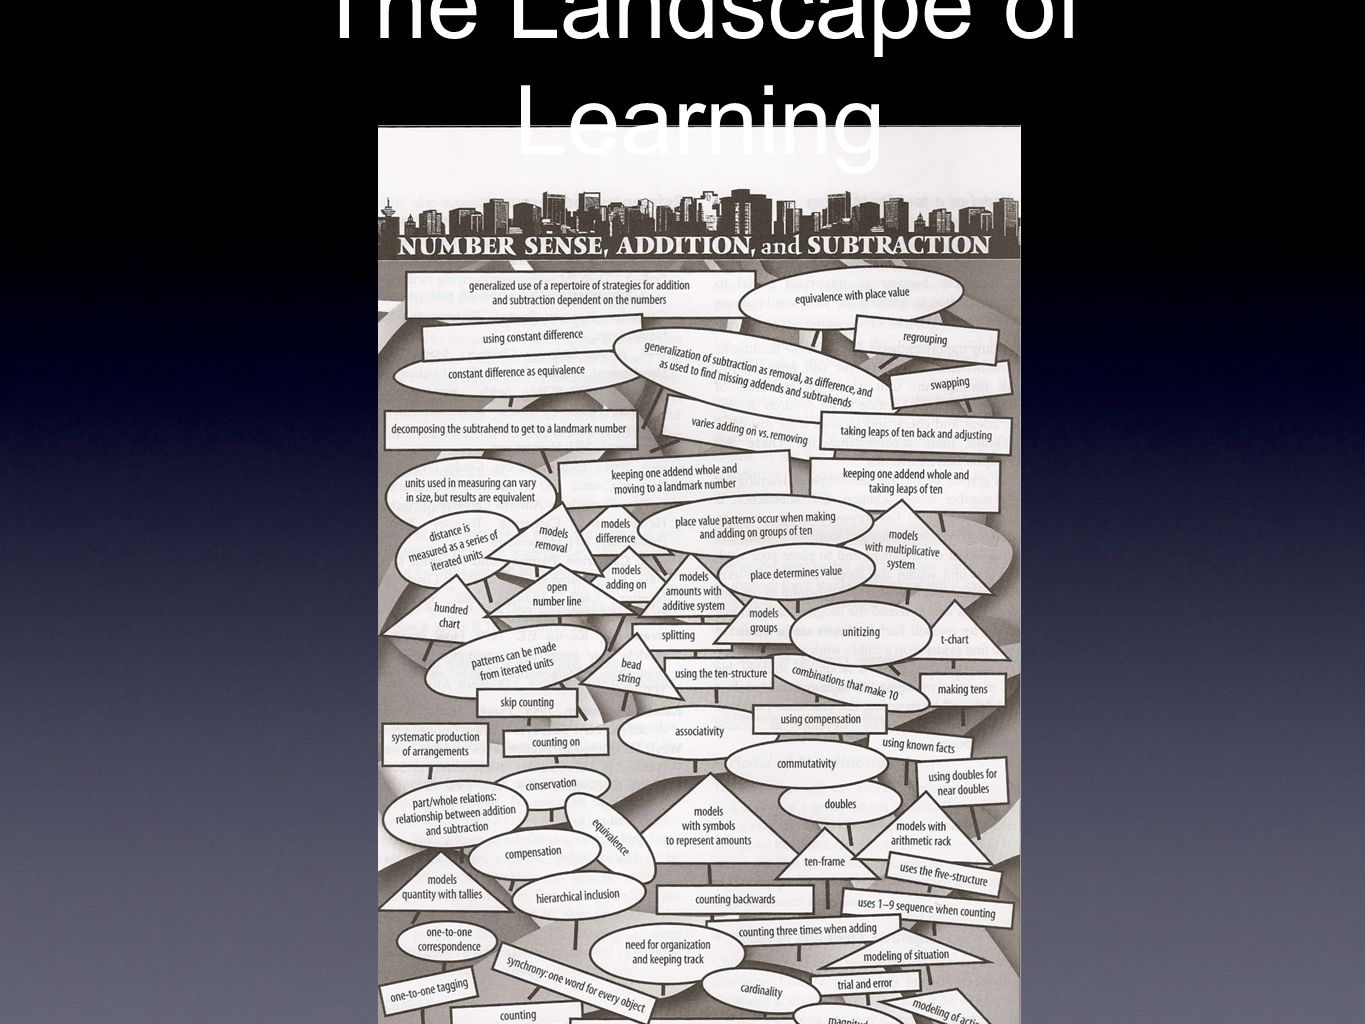 The Landscape of Learning